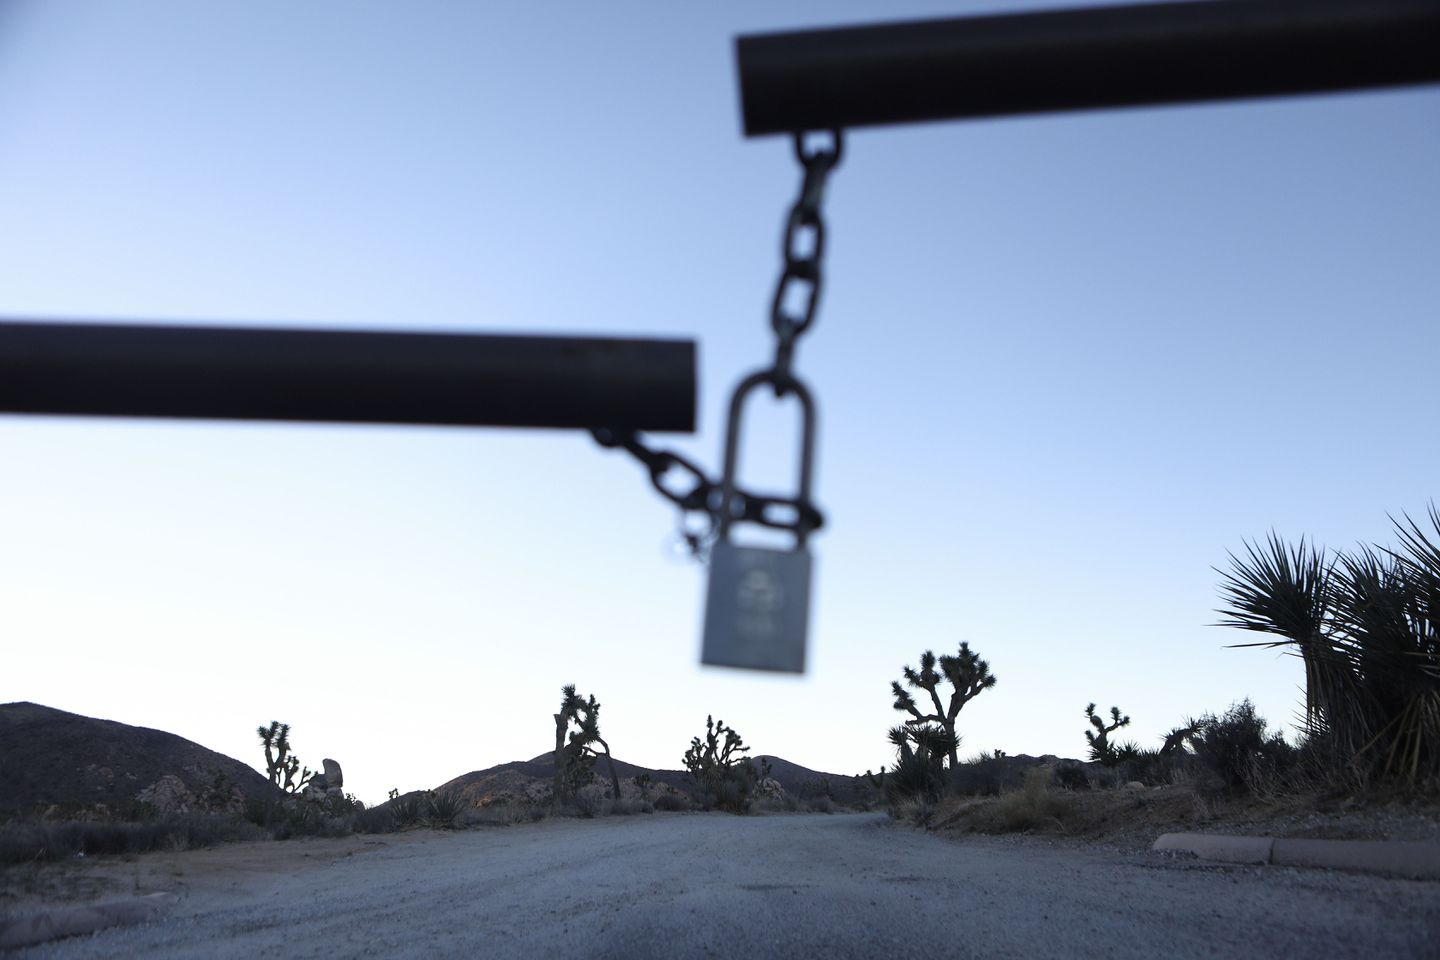 The entrance gate to a campground was locked at Joshua Tree National Park.